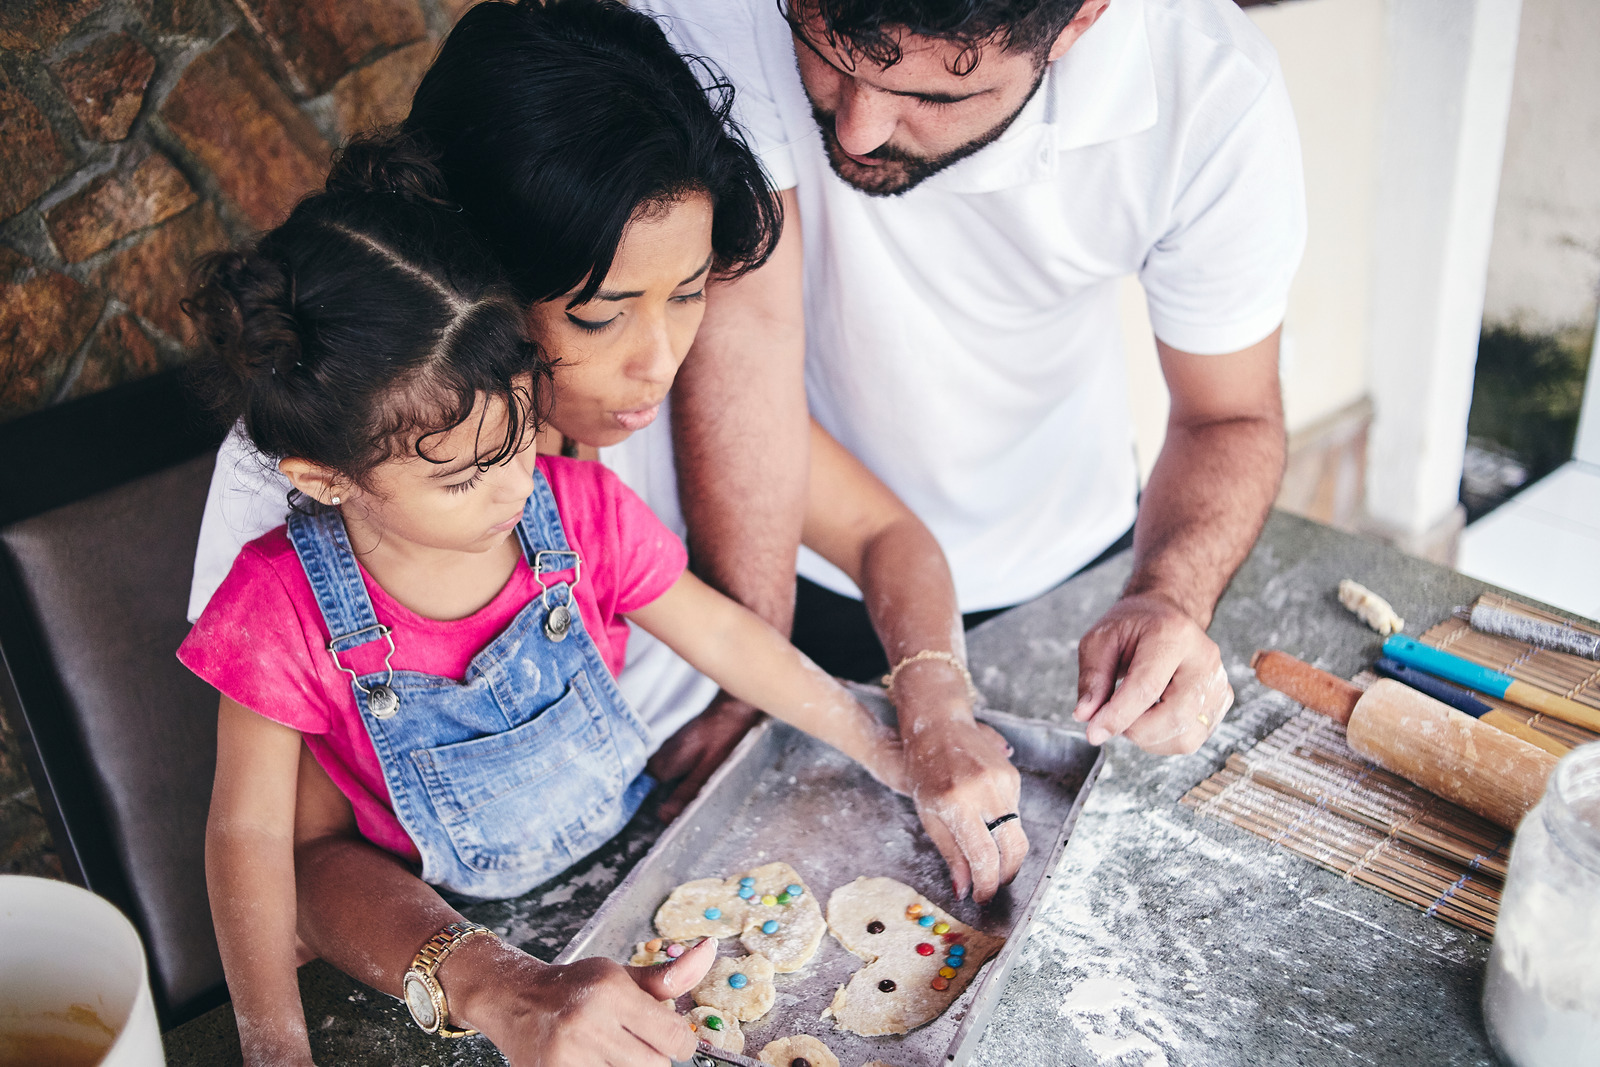 Canva - Family Baking Cookies at Home